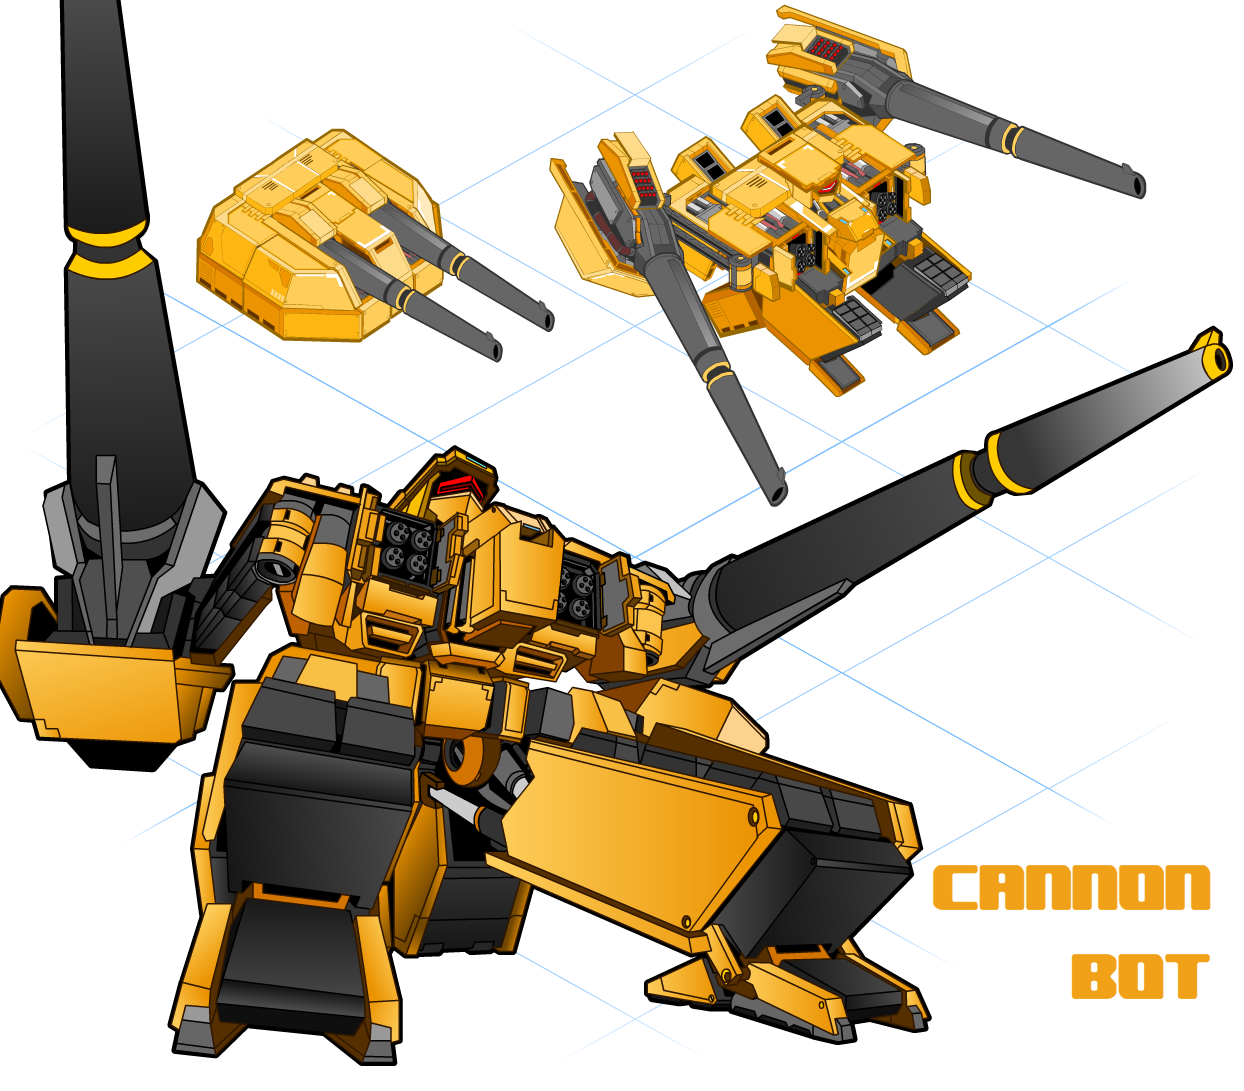 a perspective view of the cannon bot.